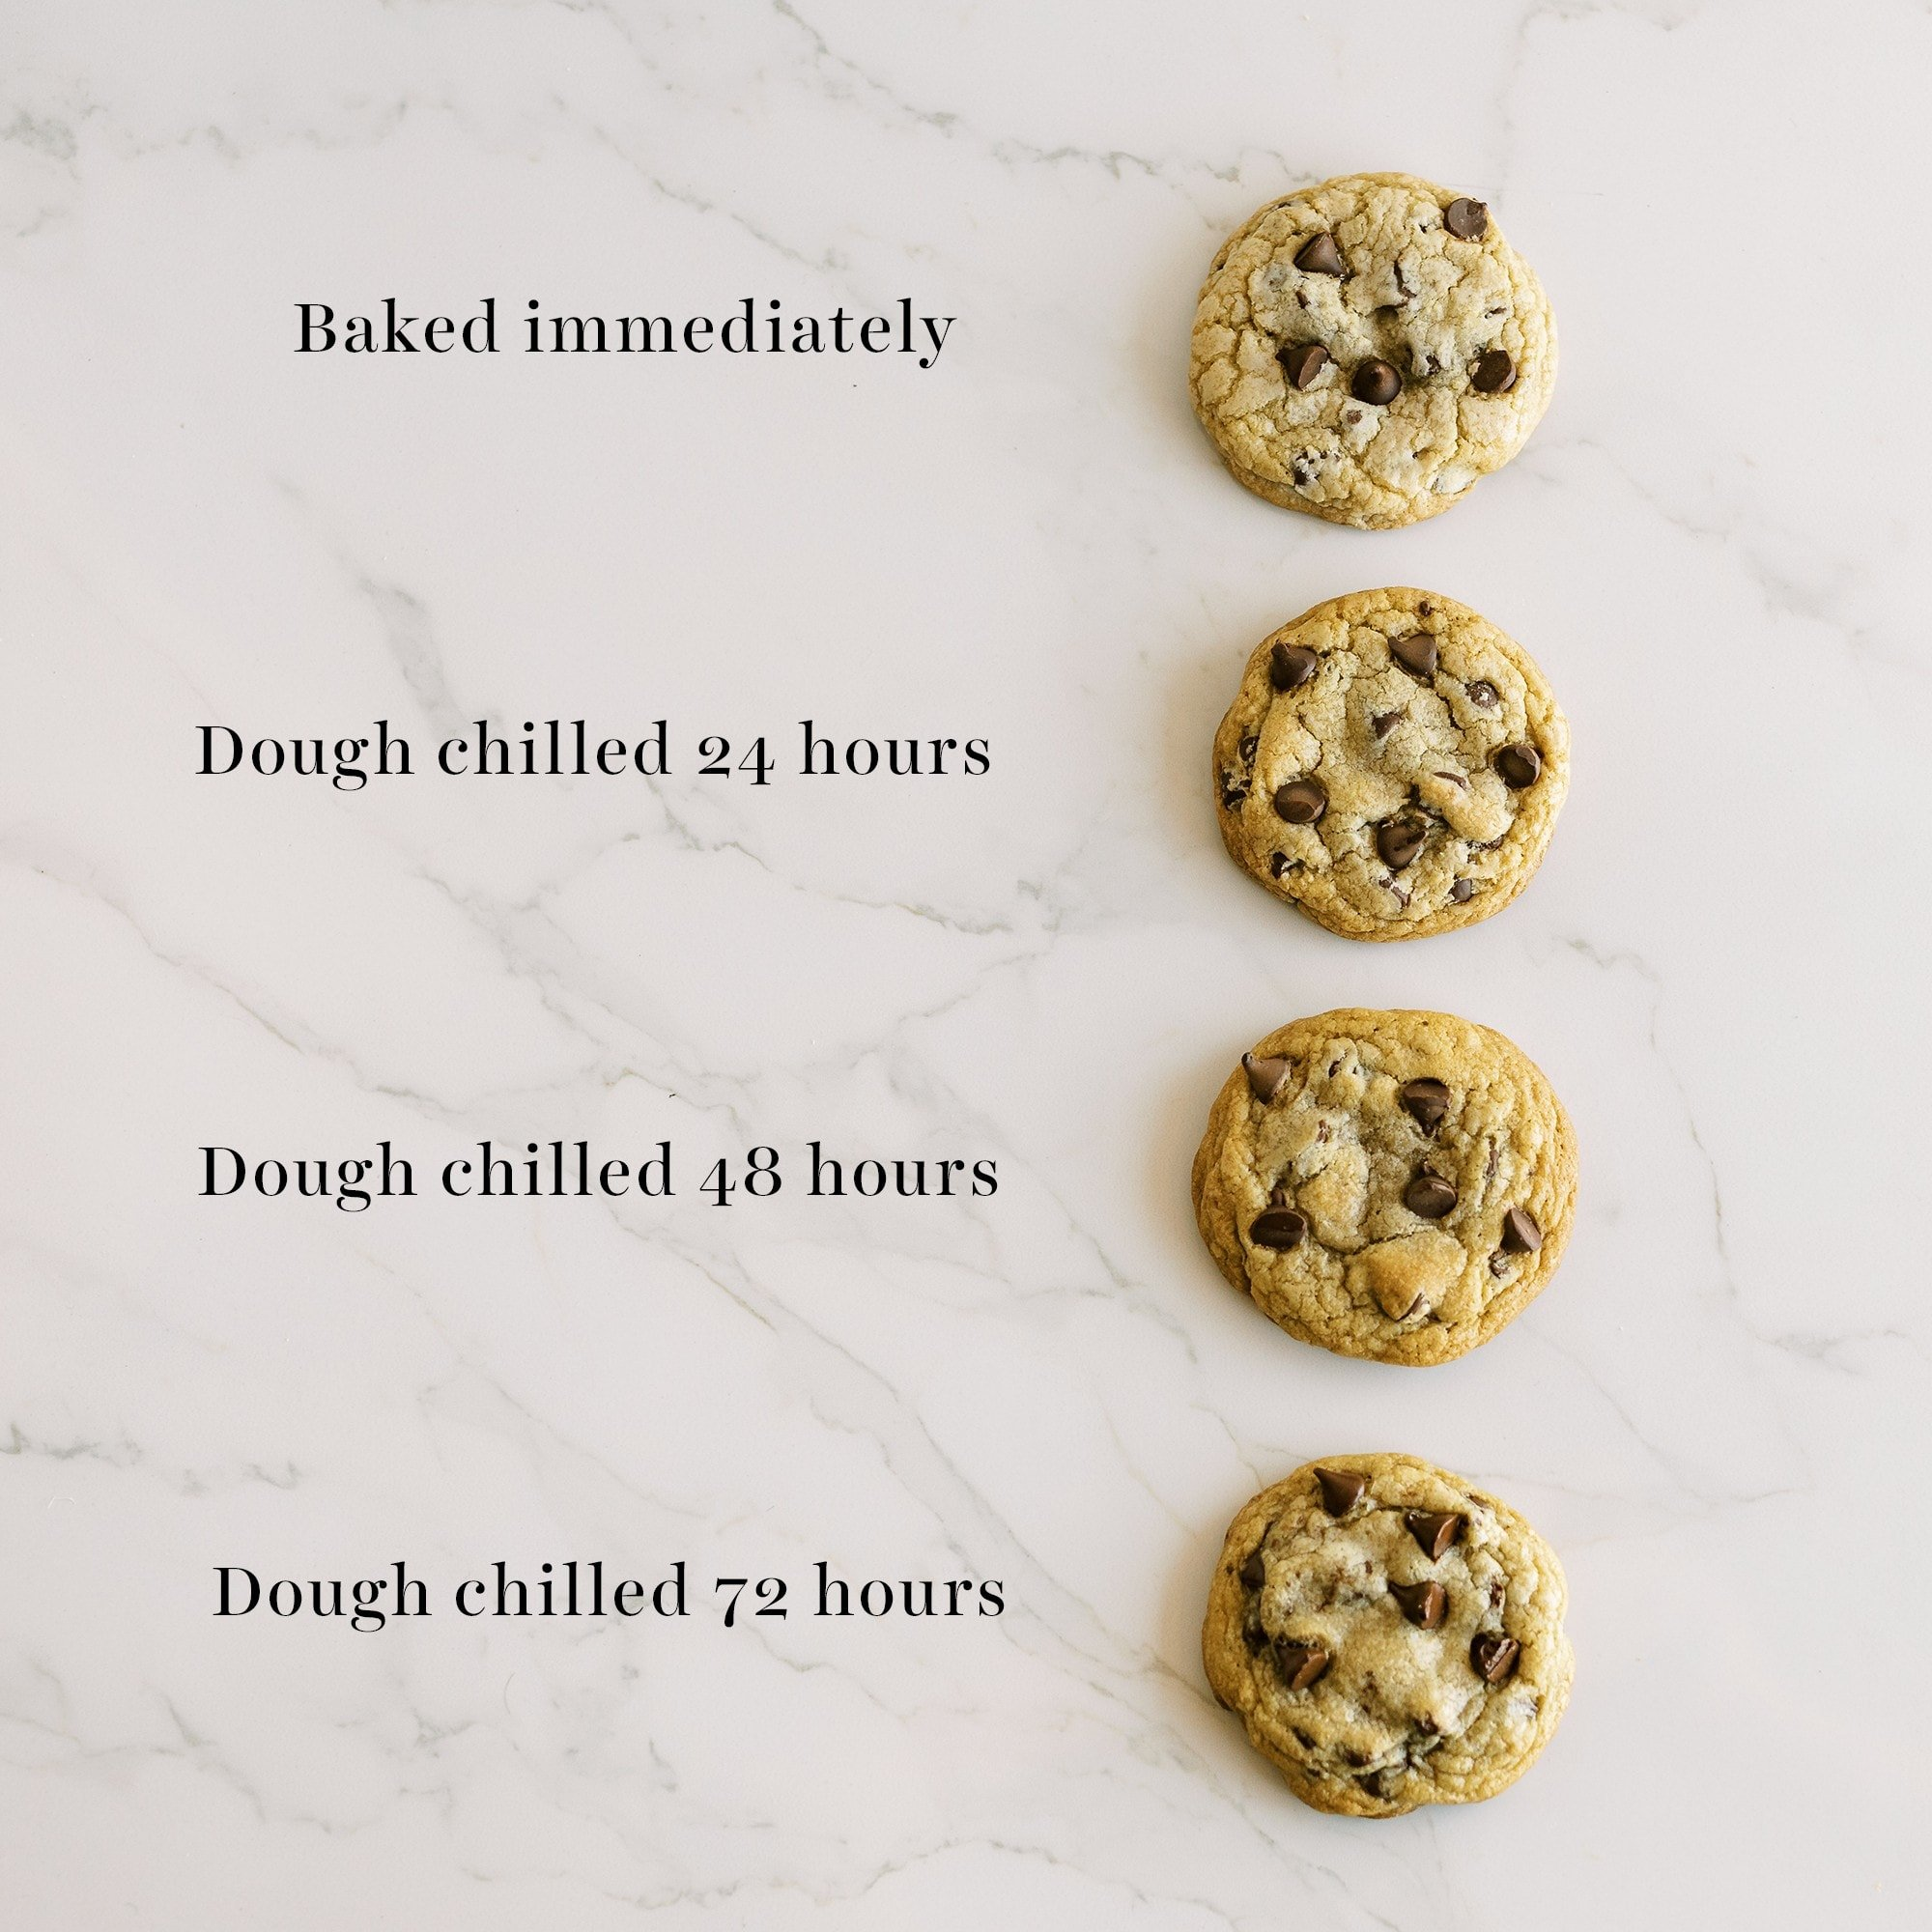 Comparing cookies baked vs chilling dough before baking